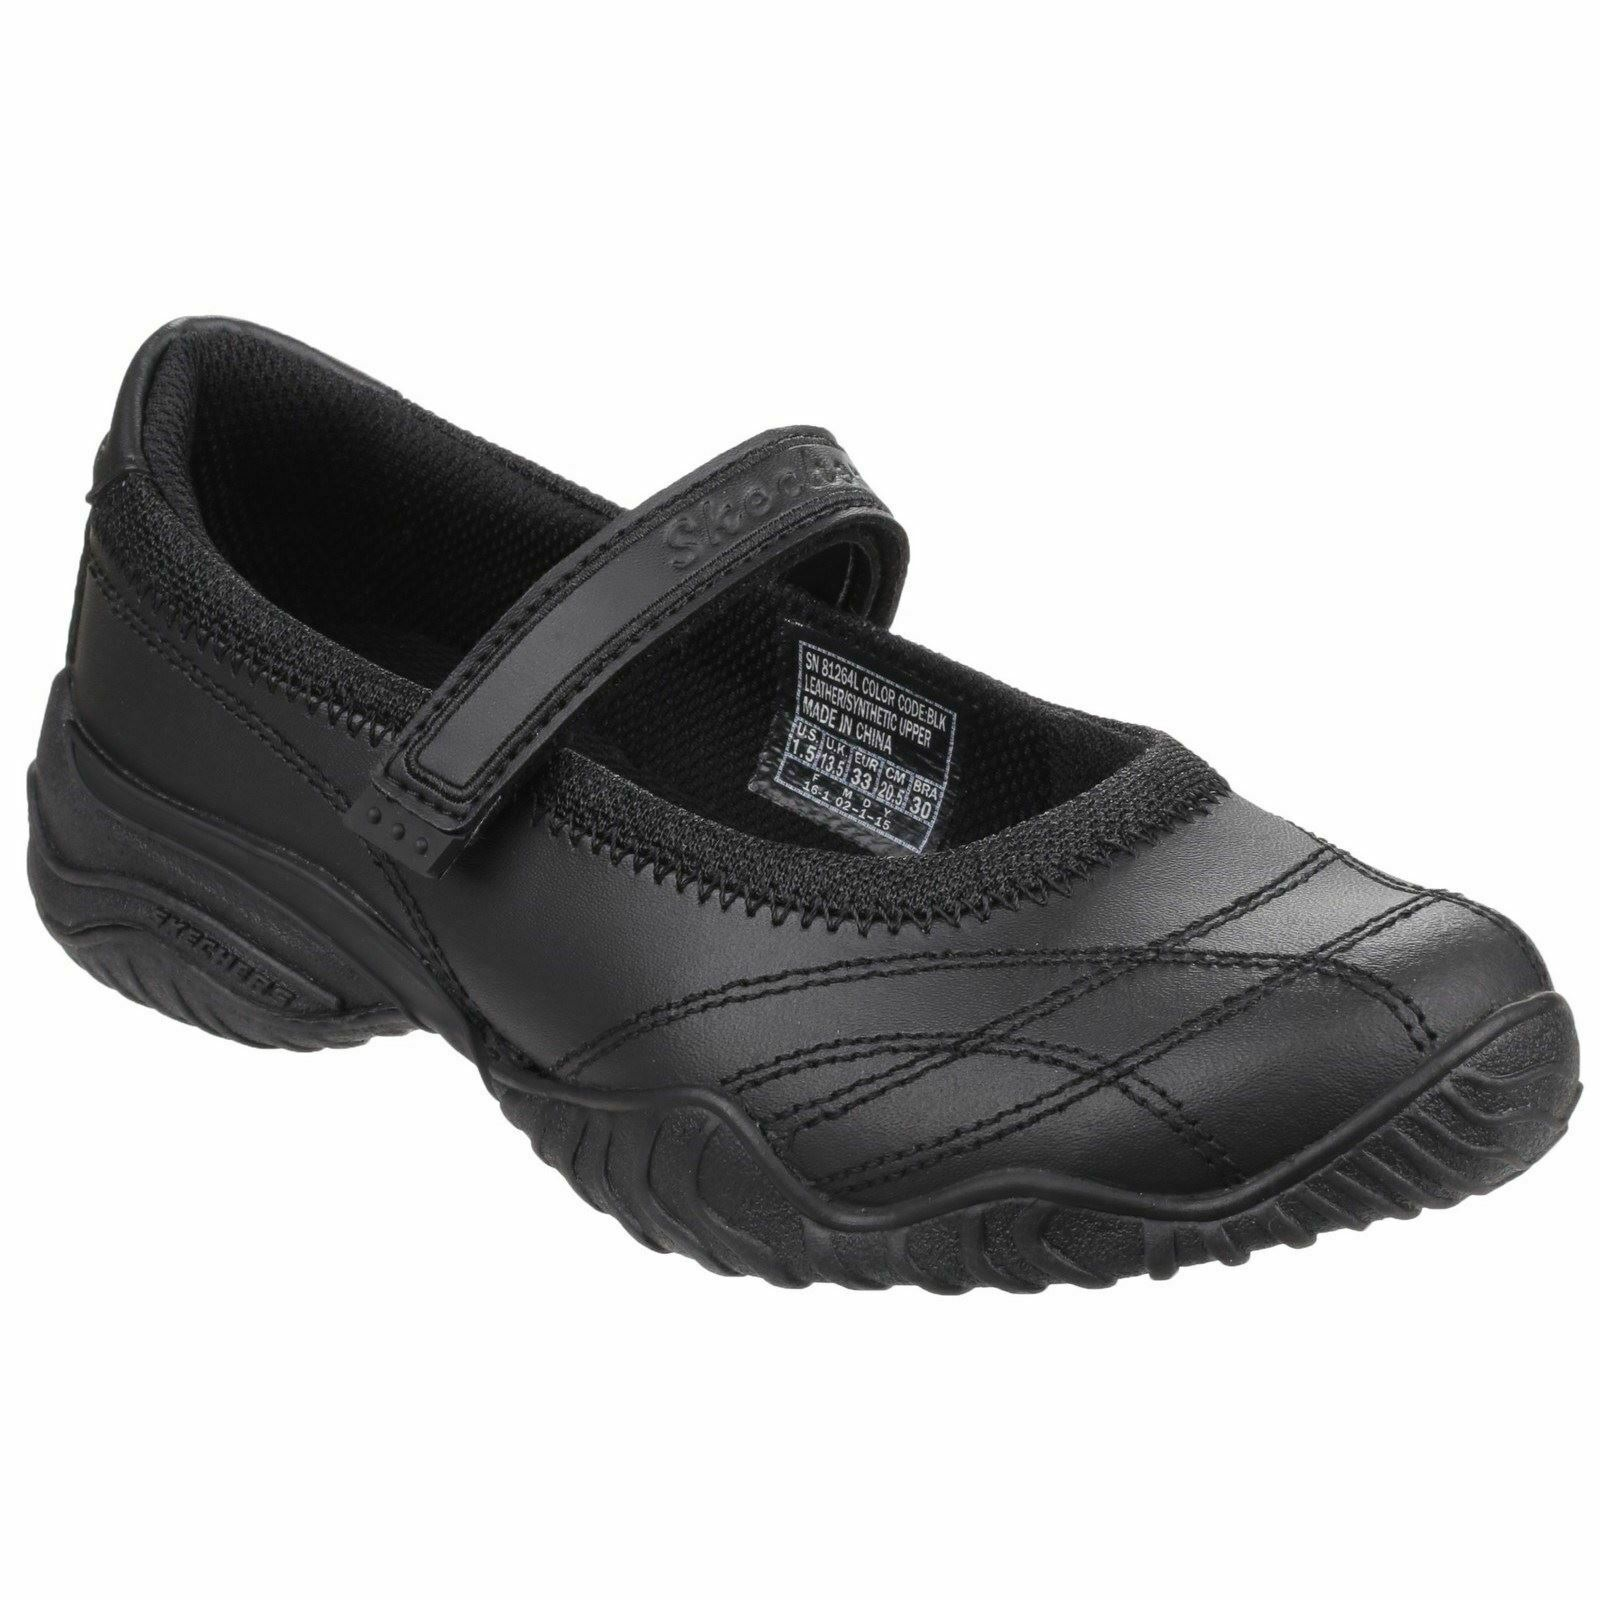 Skechers Black Velocity Pouty Shoes